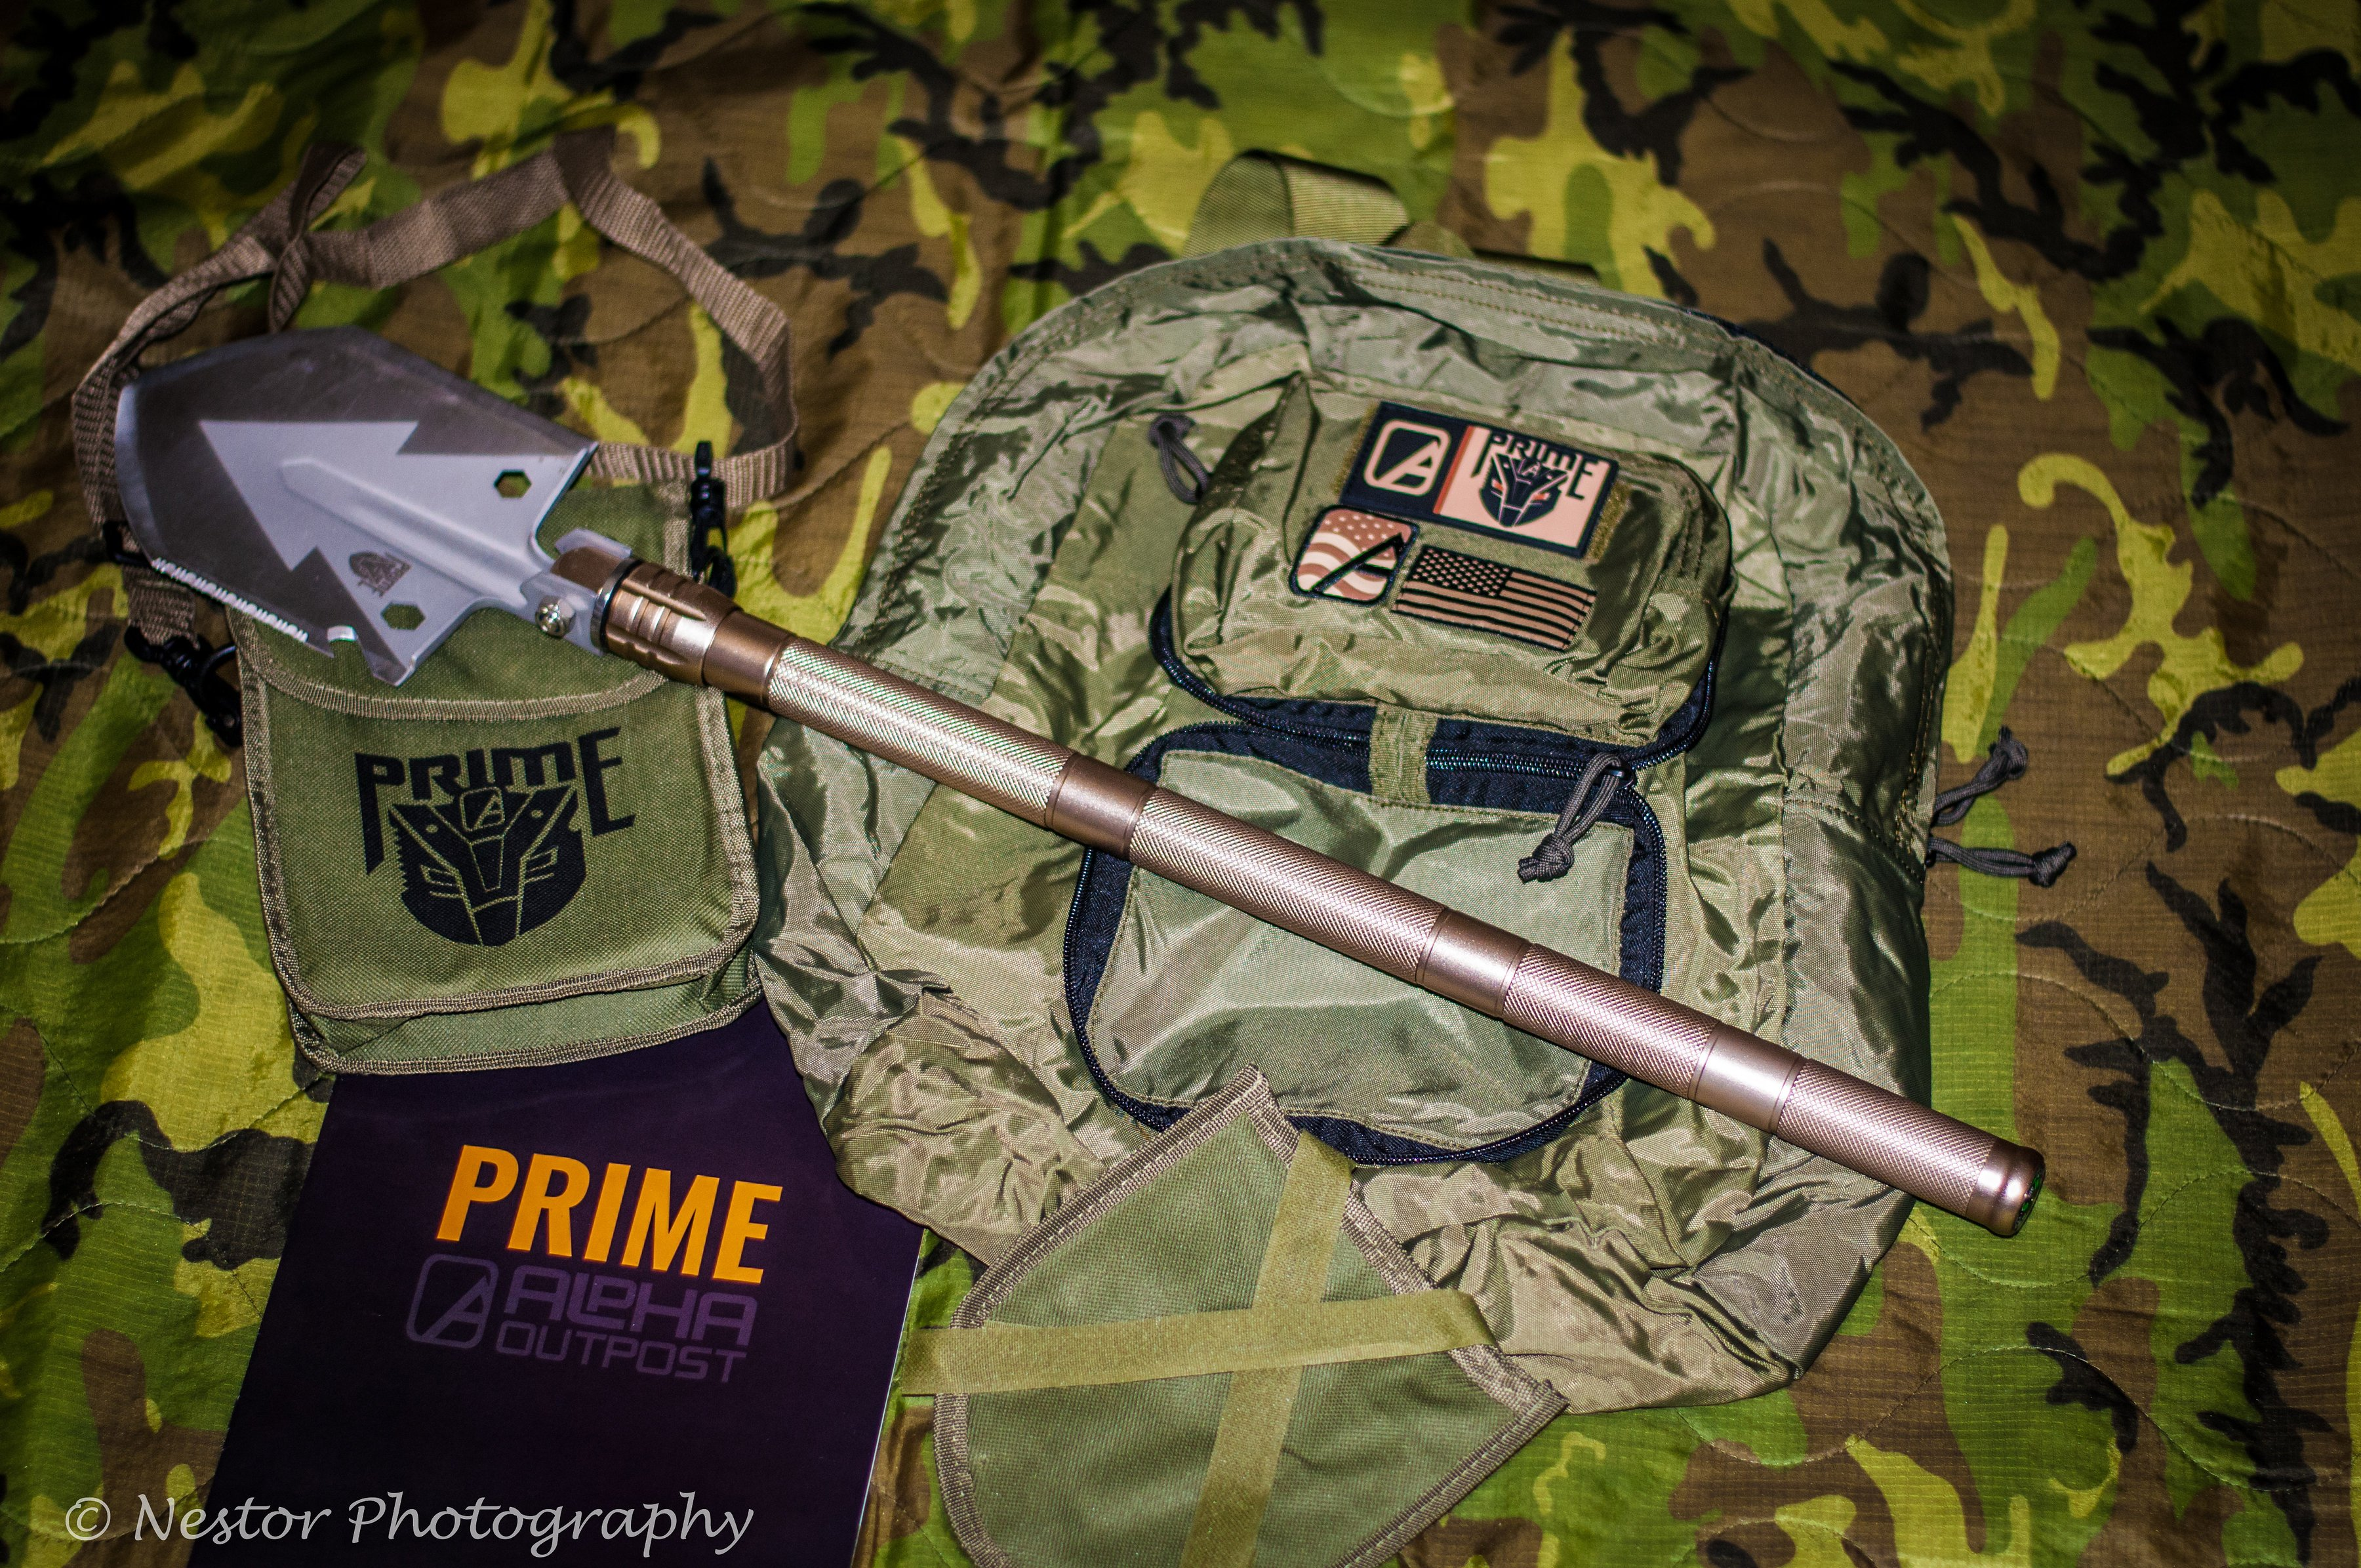 Subscription Gear Box Review: The Alpha Outpost Prime Box